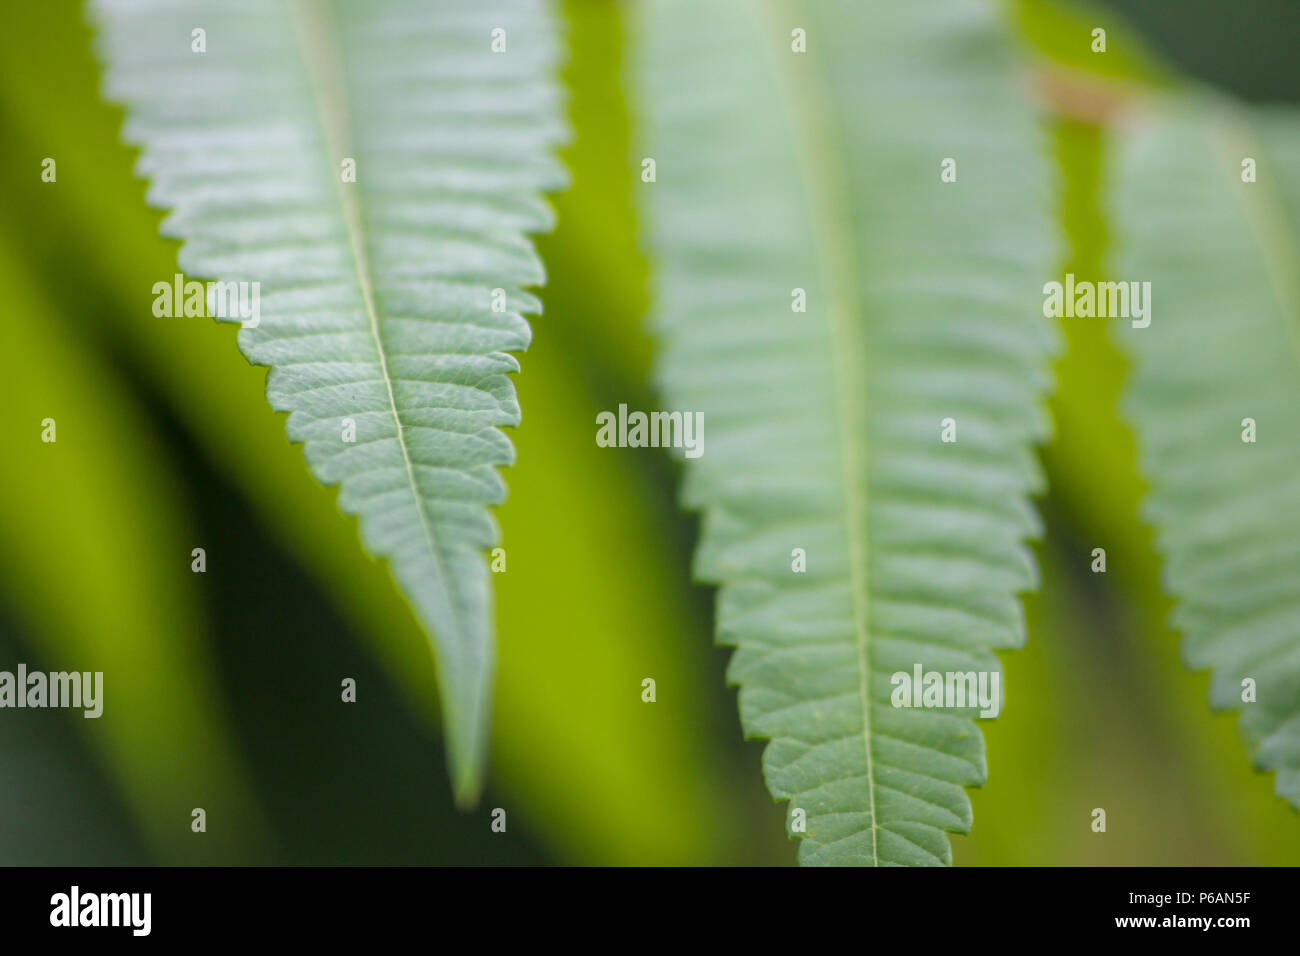 Close-up of green serrated leaflets that belong to the staghorn sumac (Rhus typhina) - Stock Image